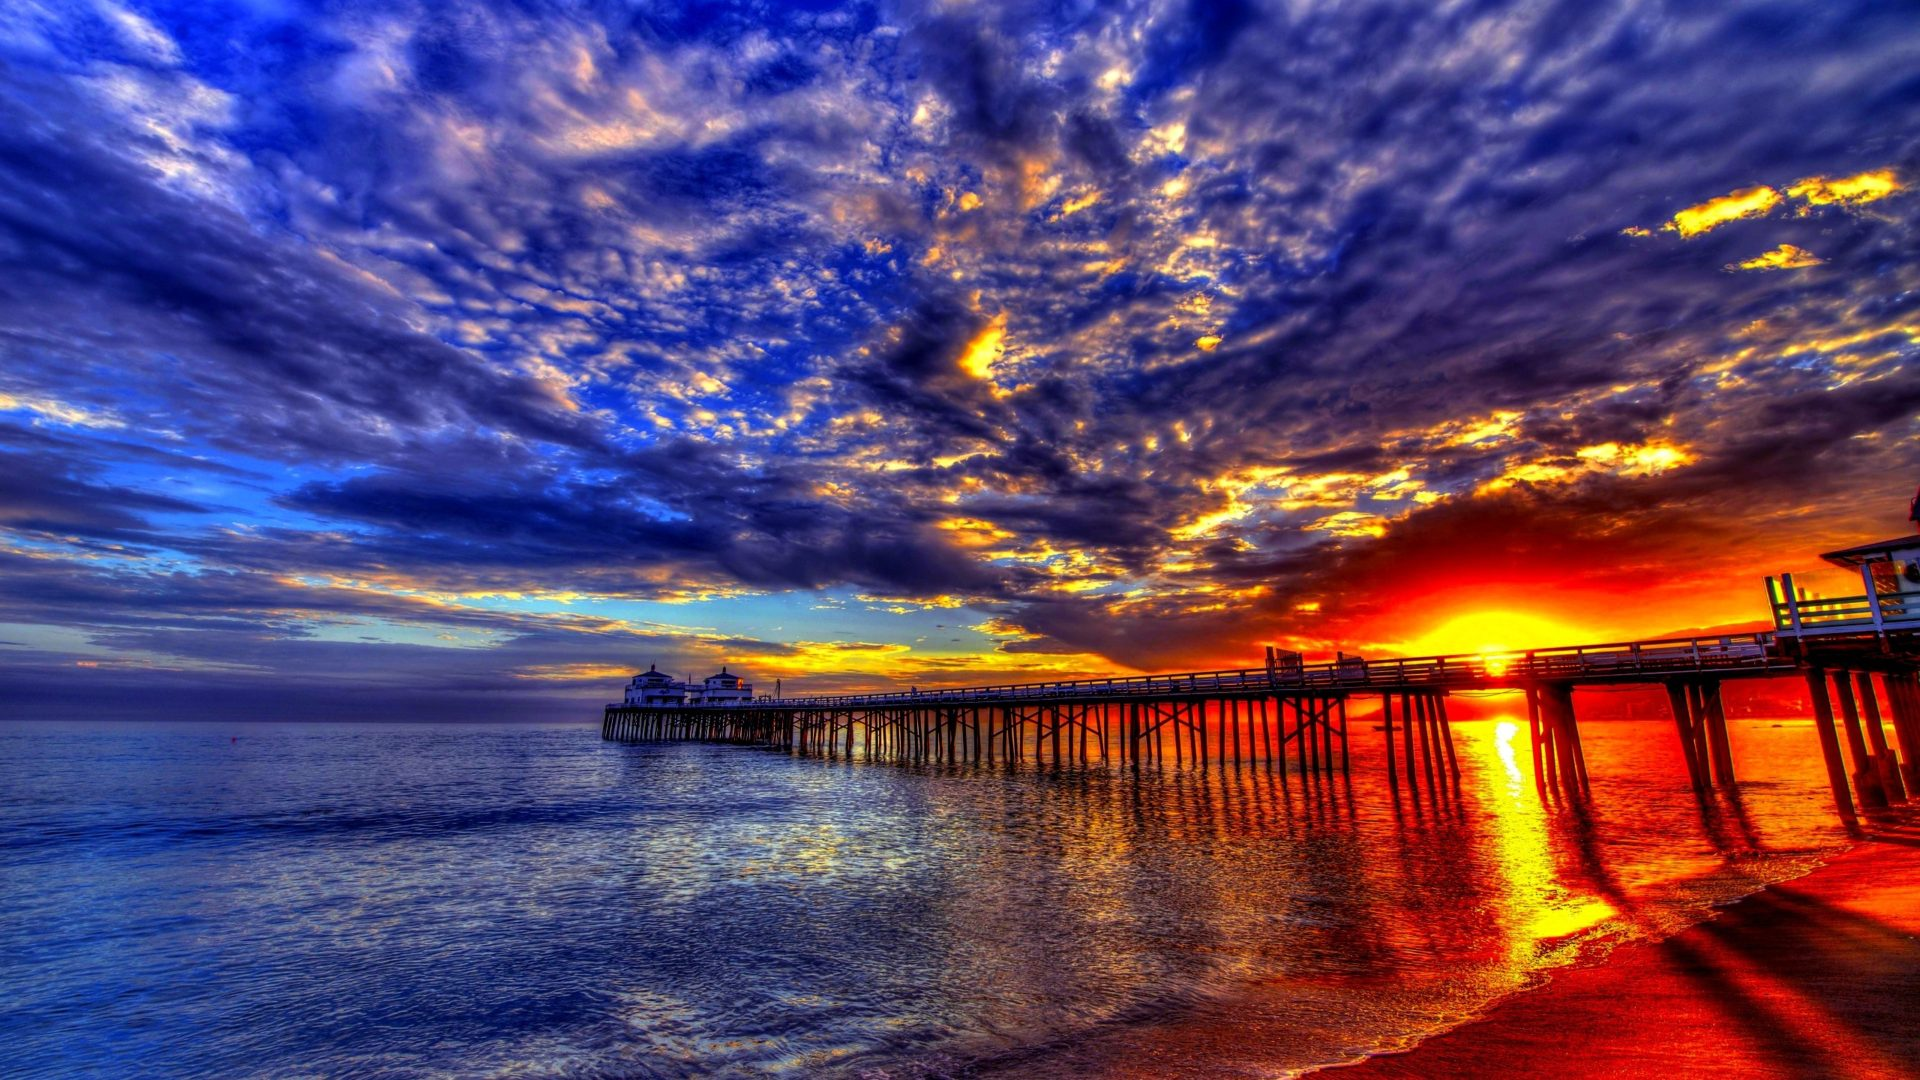 Sunset Beach Sea Pier Platform On Wooden Pillars Sky Clouds Evening Beautiful Hd Wallpaper